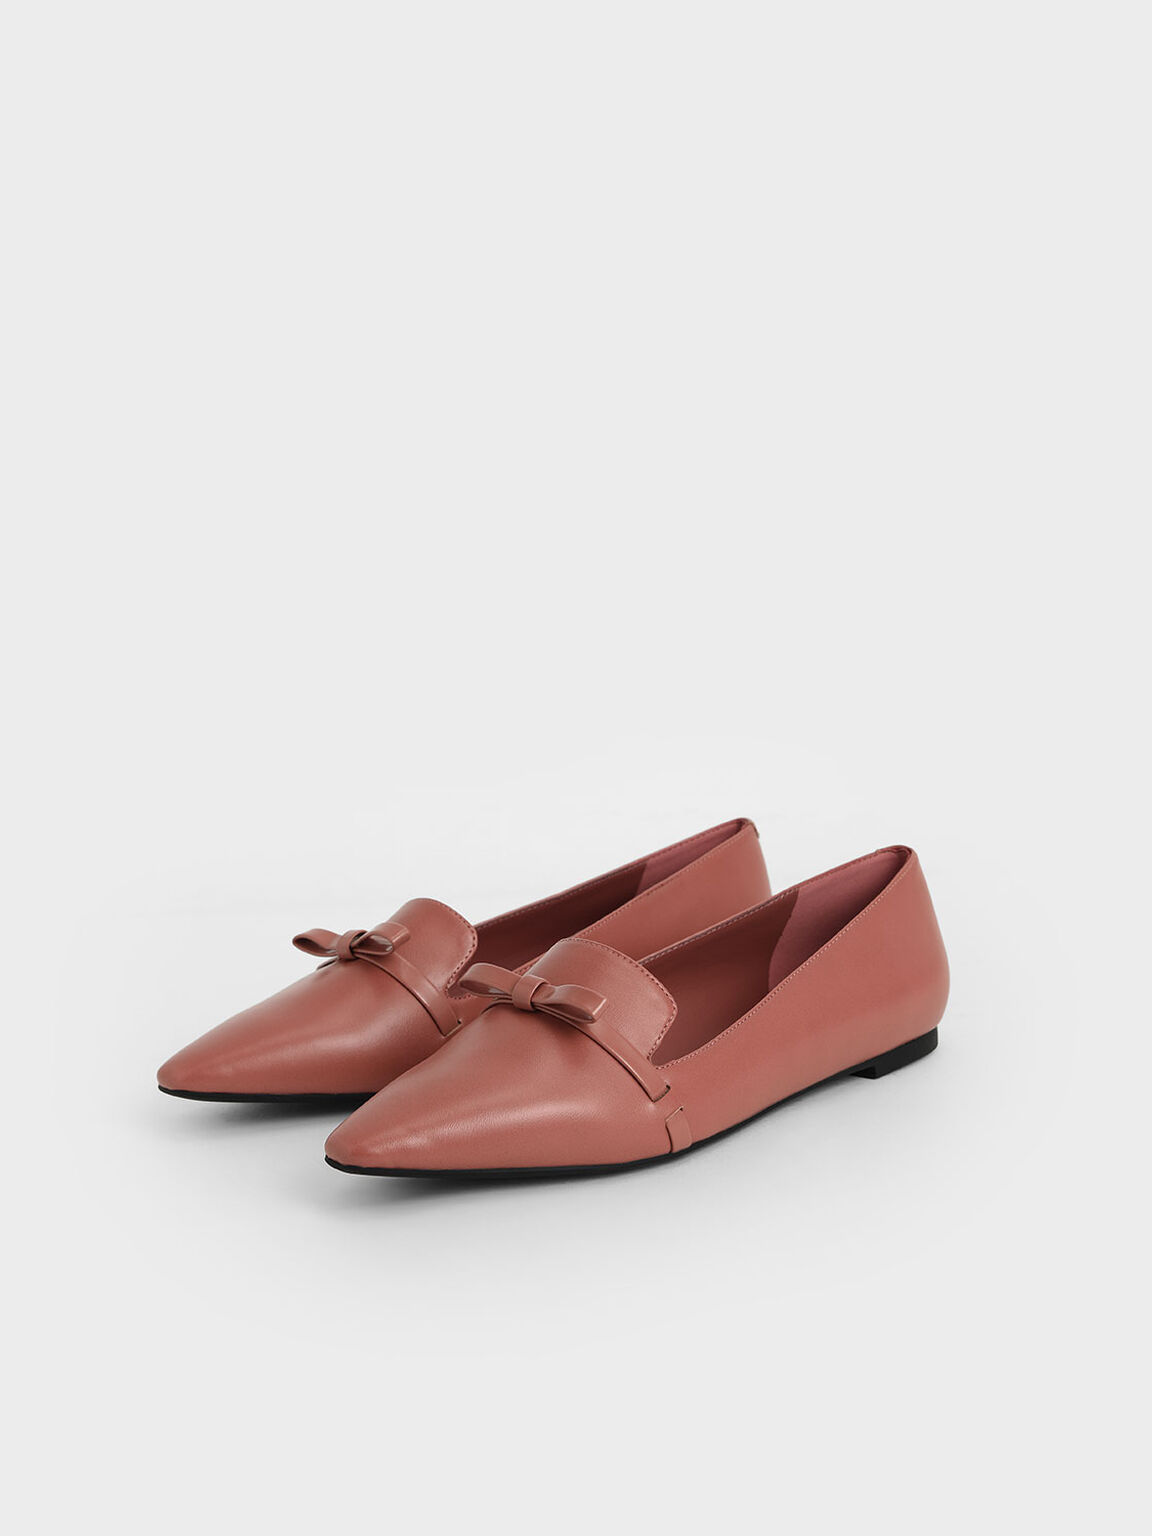 Bow Tie Loafers, Pink, hi-res